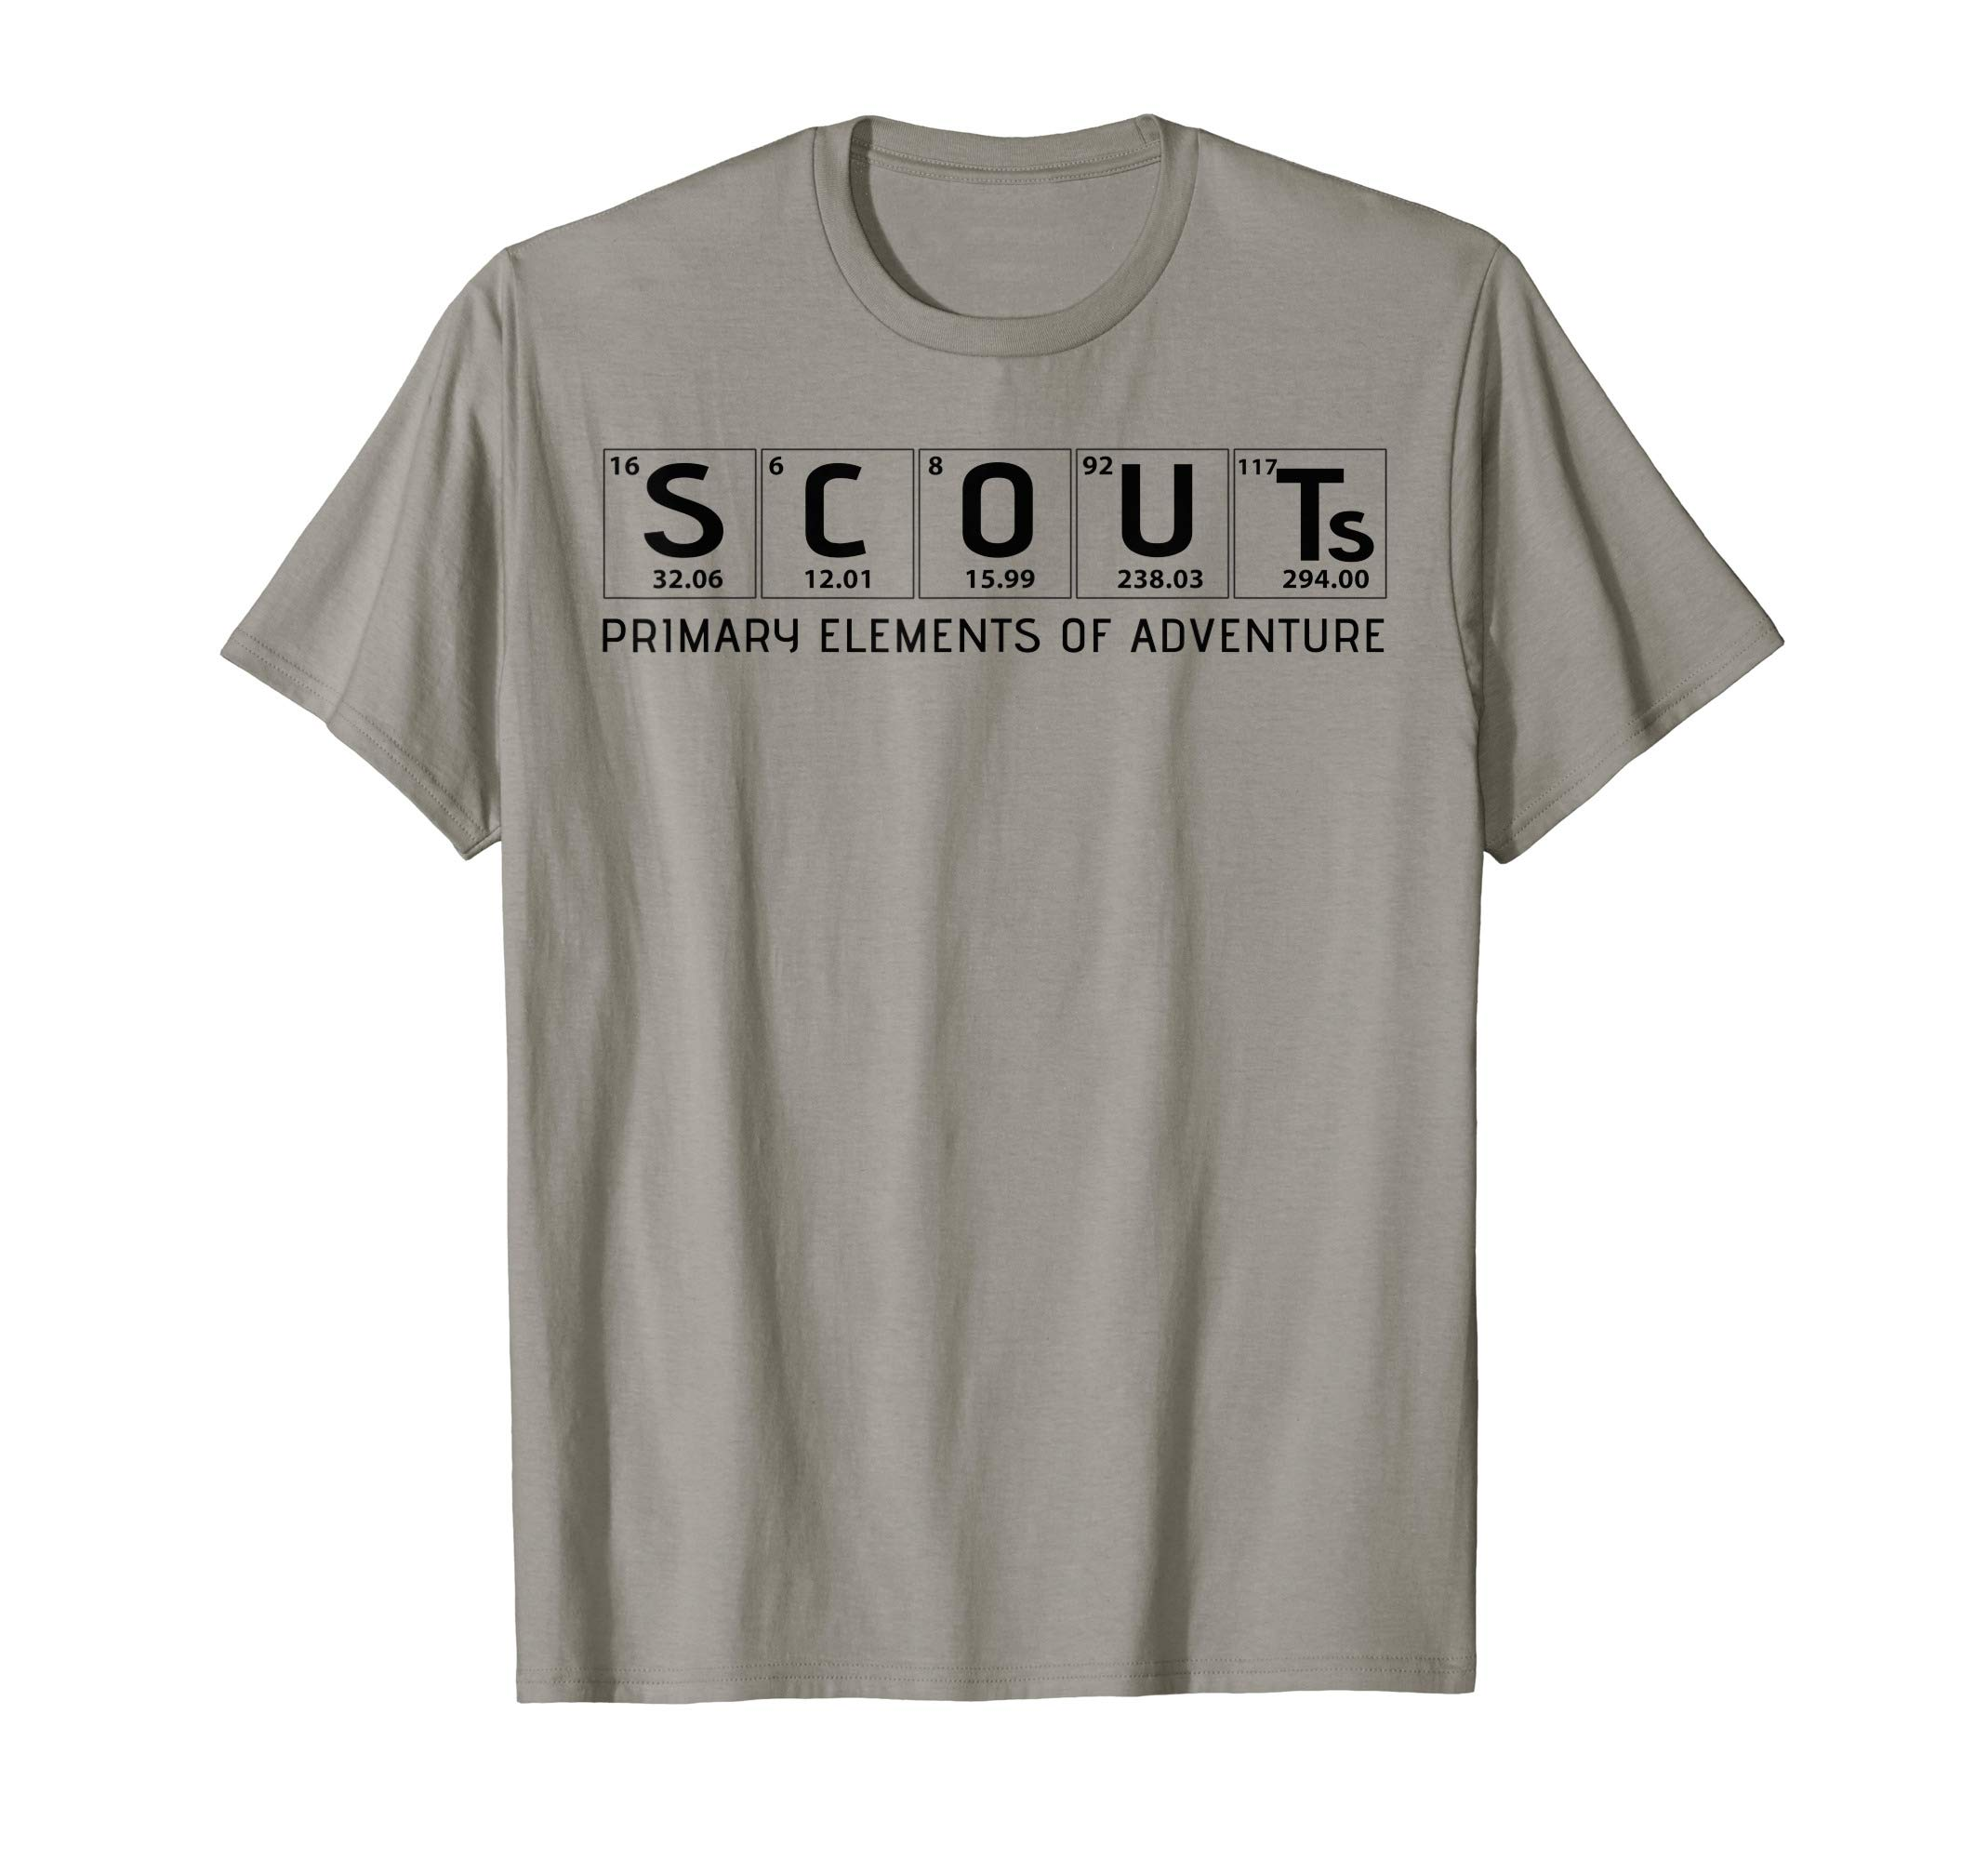 Scouts Primary Elements of Adventure | Scout Science T-Shirt by Cub Camping Hiking Scouting Gifts